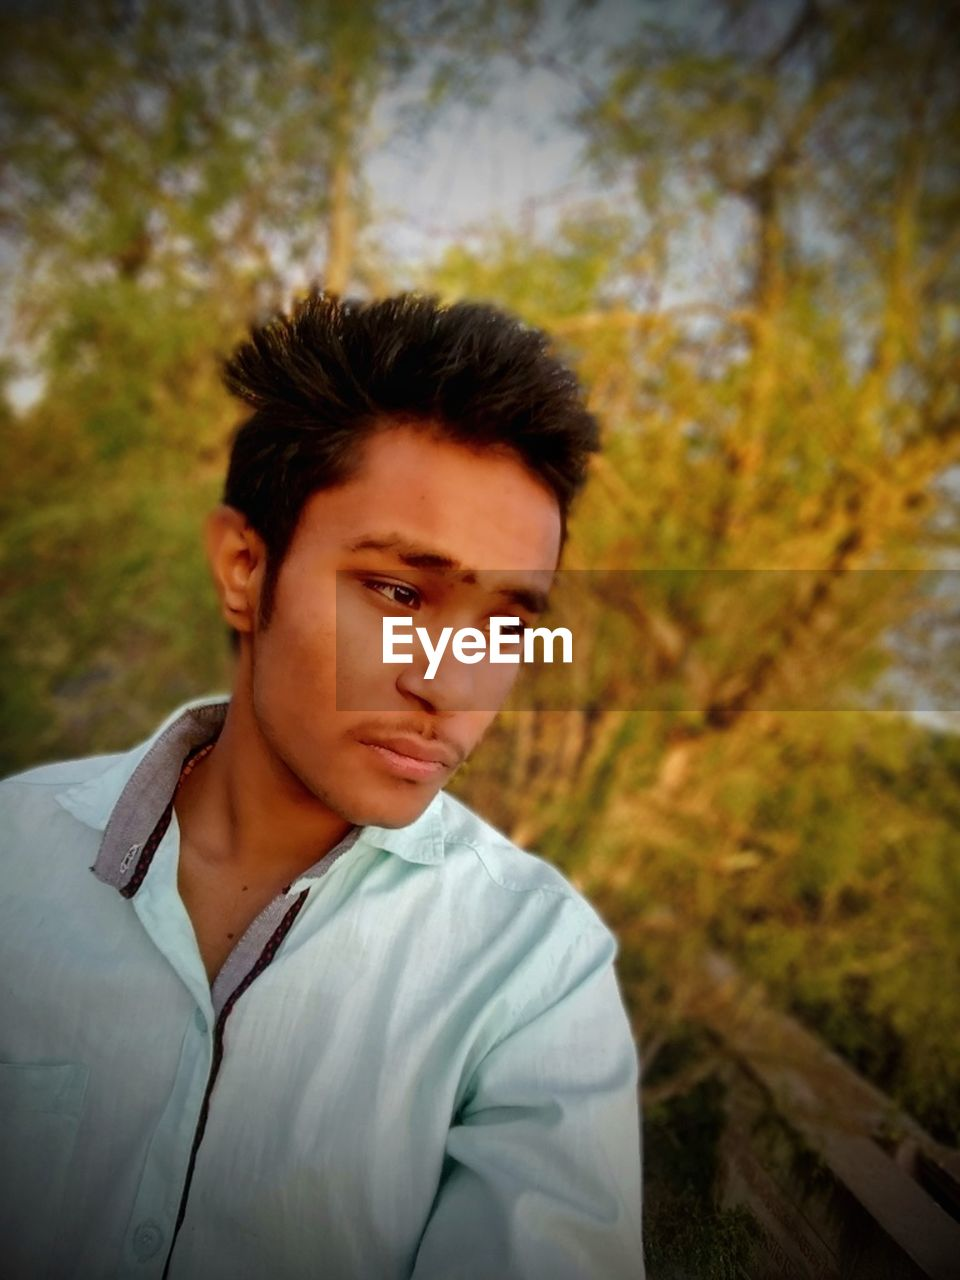 real people, one person, young adult, casual clothing, leisure activity, young men, front view, focus on foreground, lifestyles, outdoors, nature, headshot, portrait, day, tree, tensed, close-up